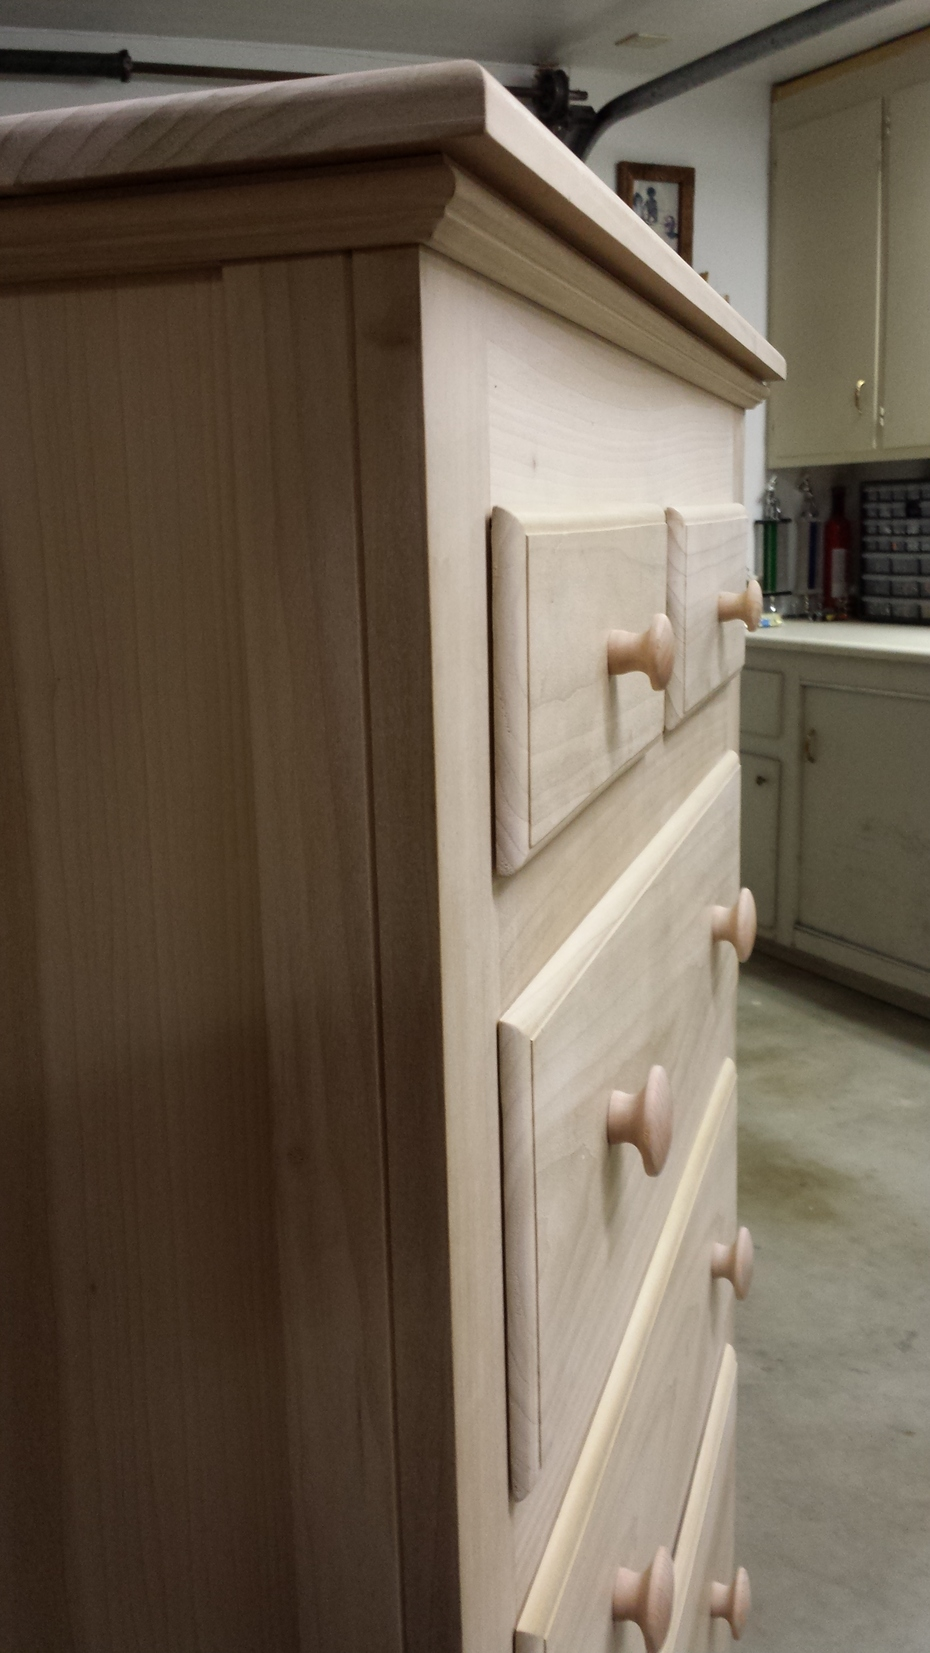 Side view of finished dresser.